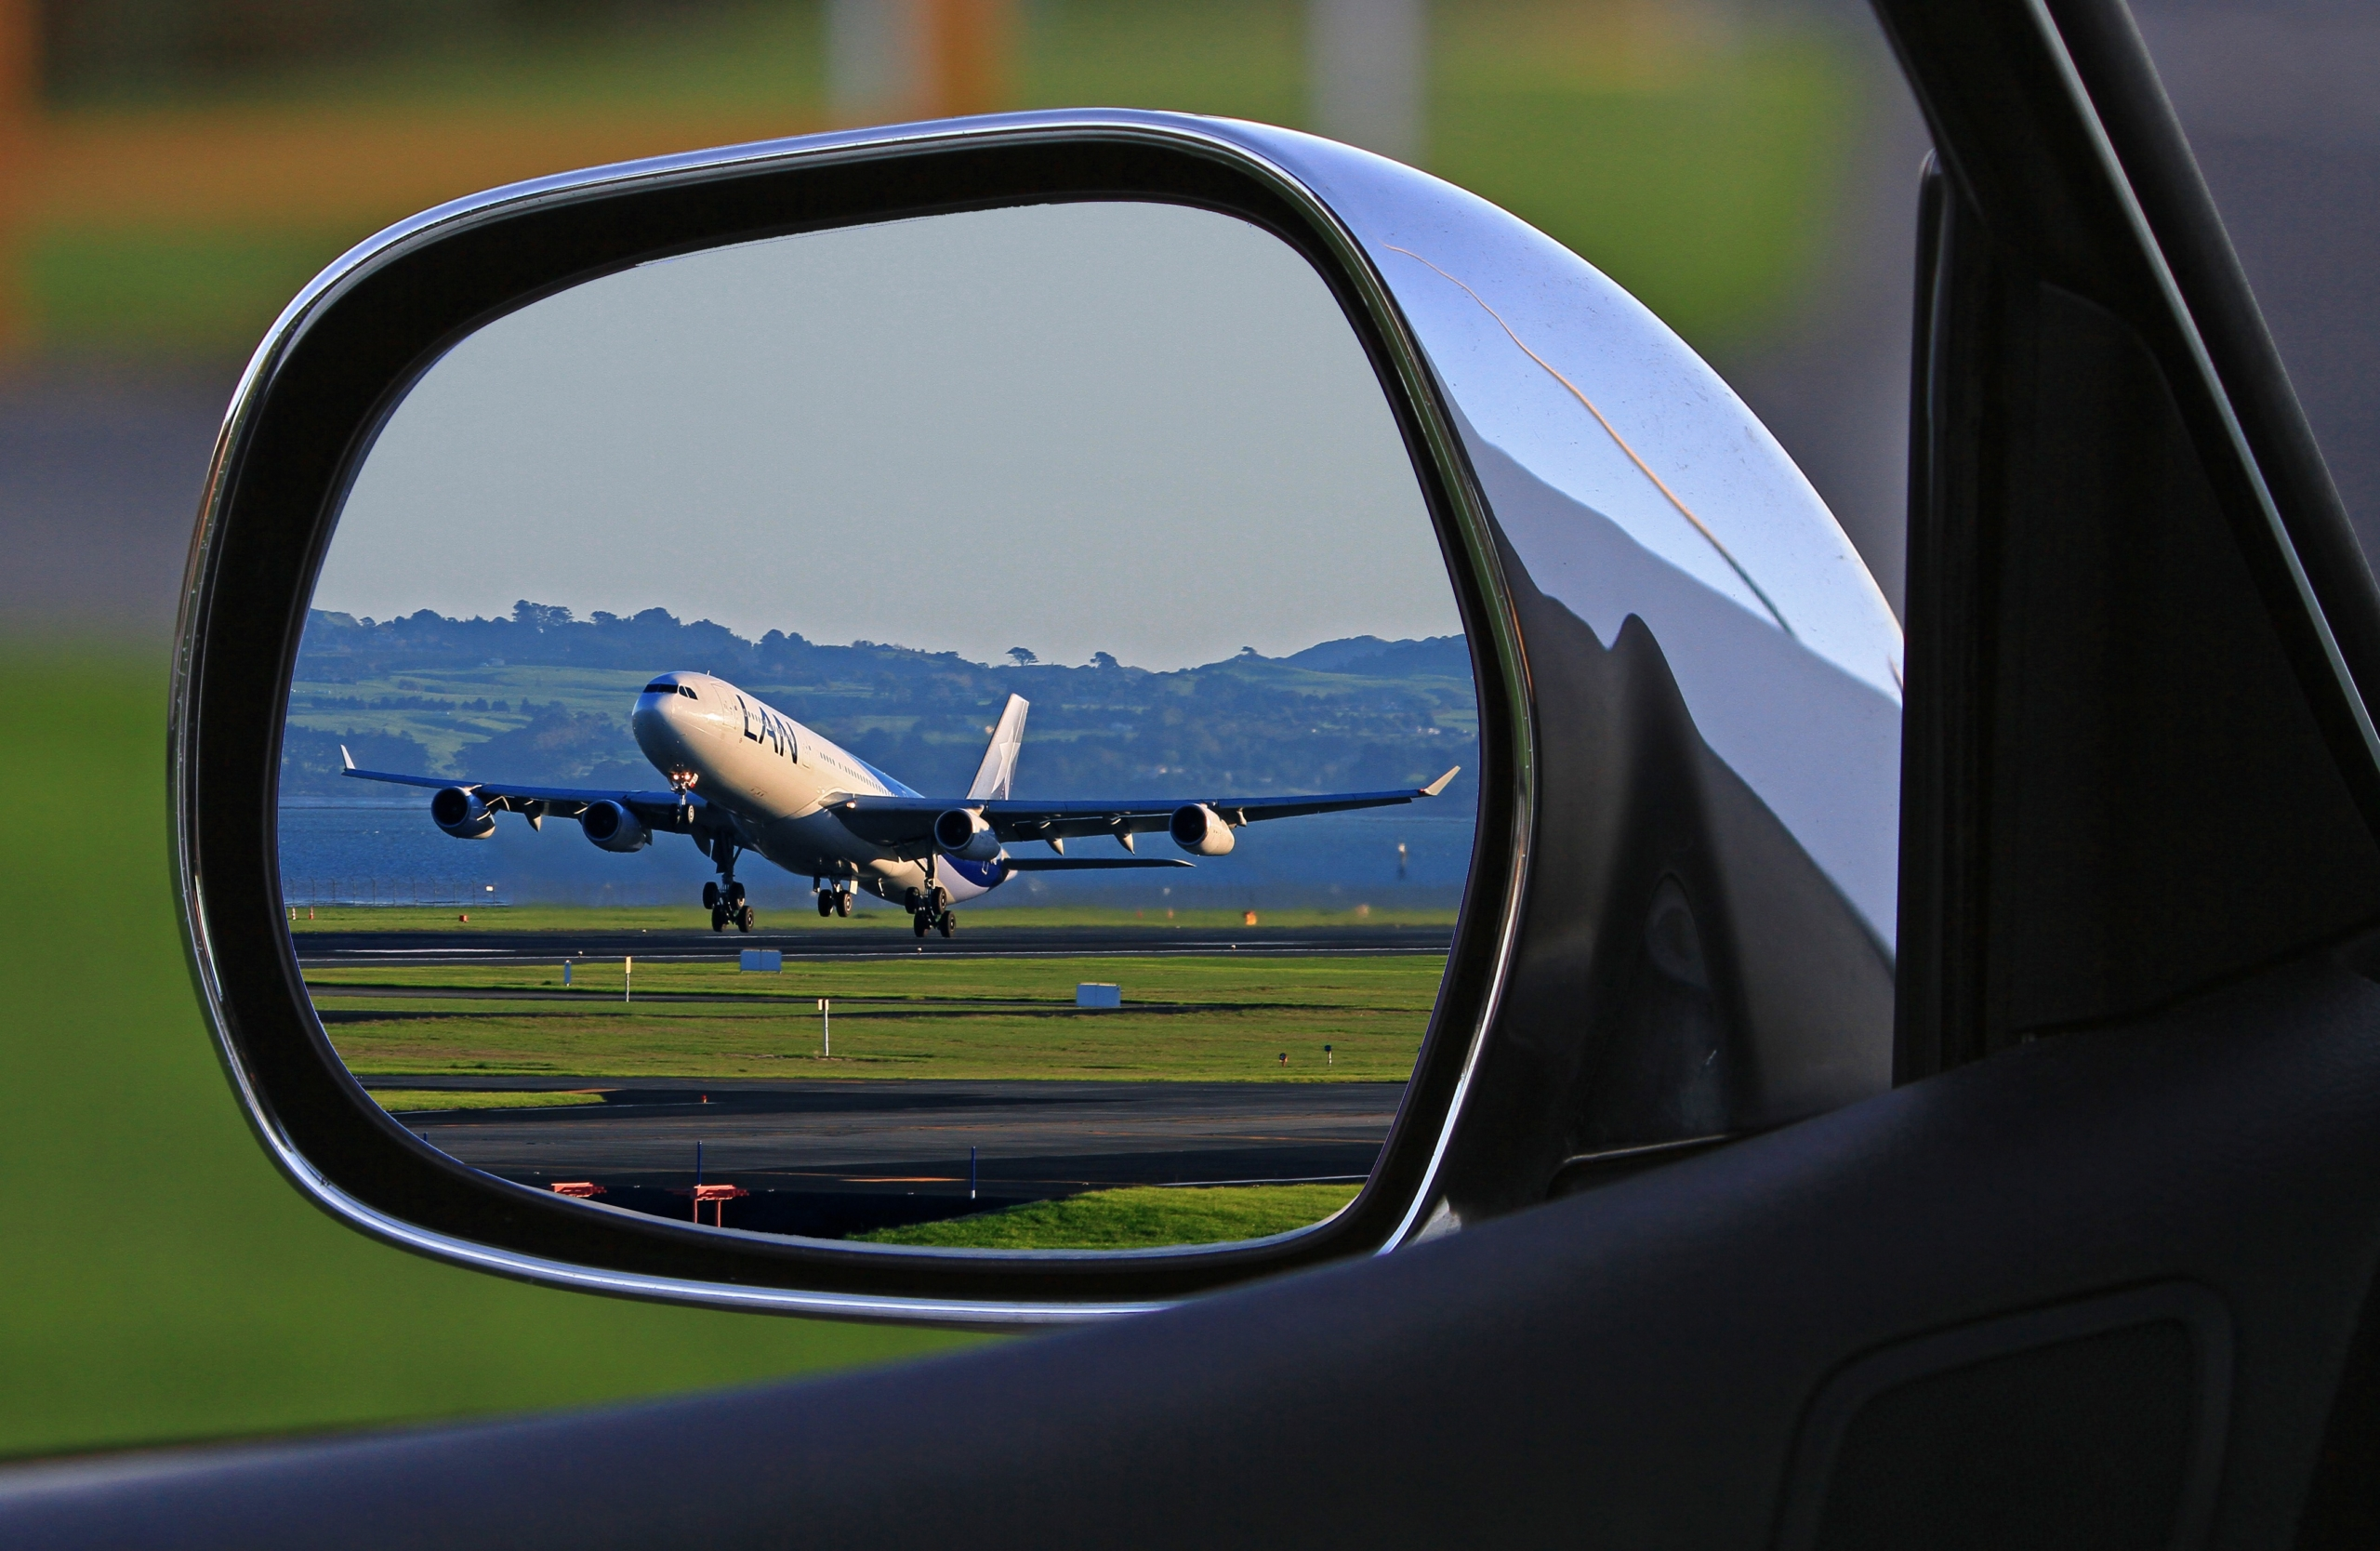 Aeroplane takes off at airport, seen in car mirror